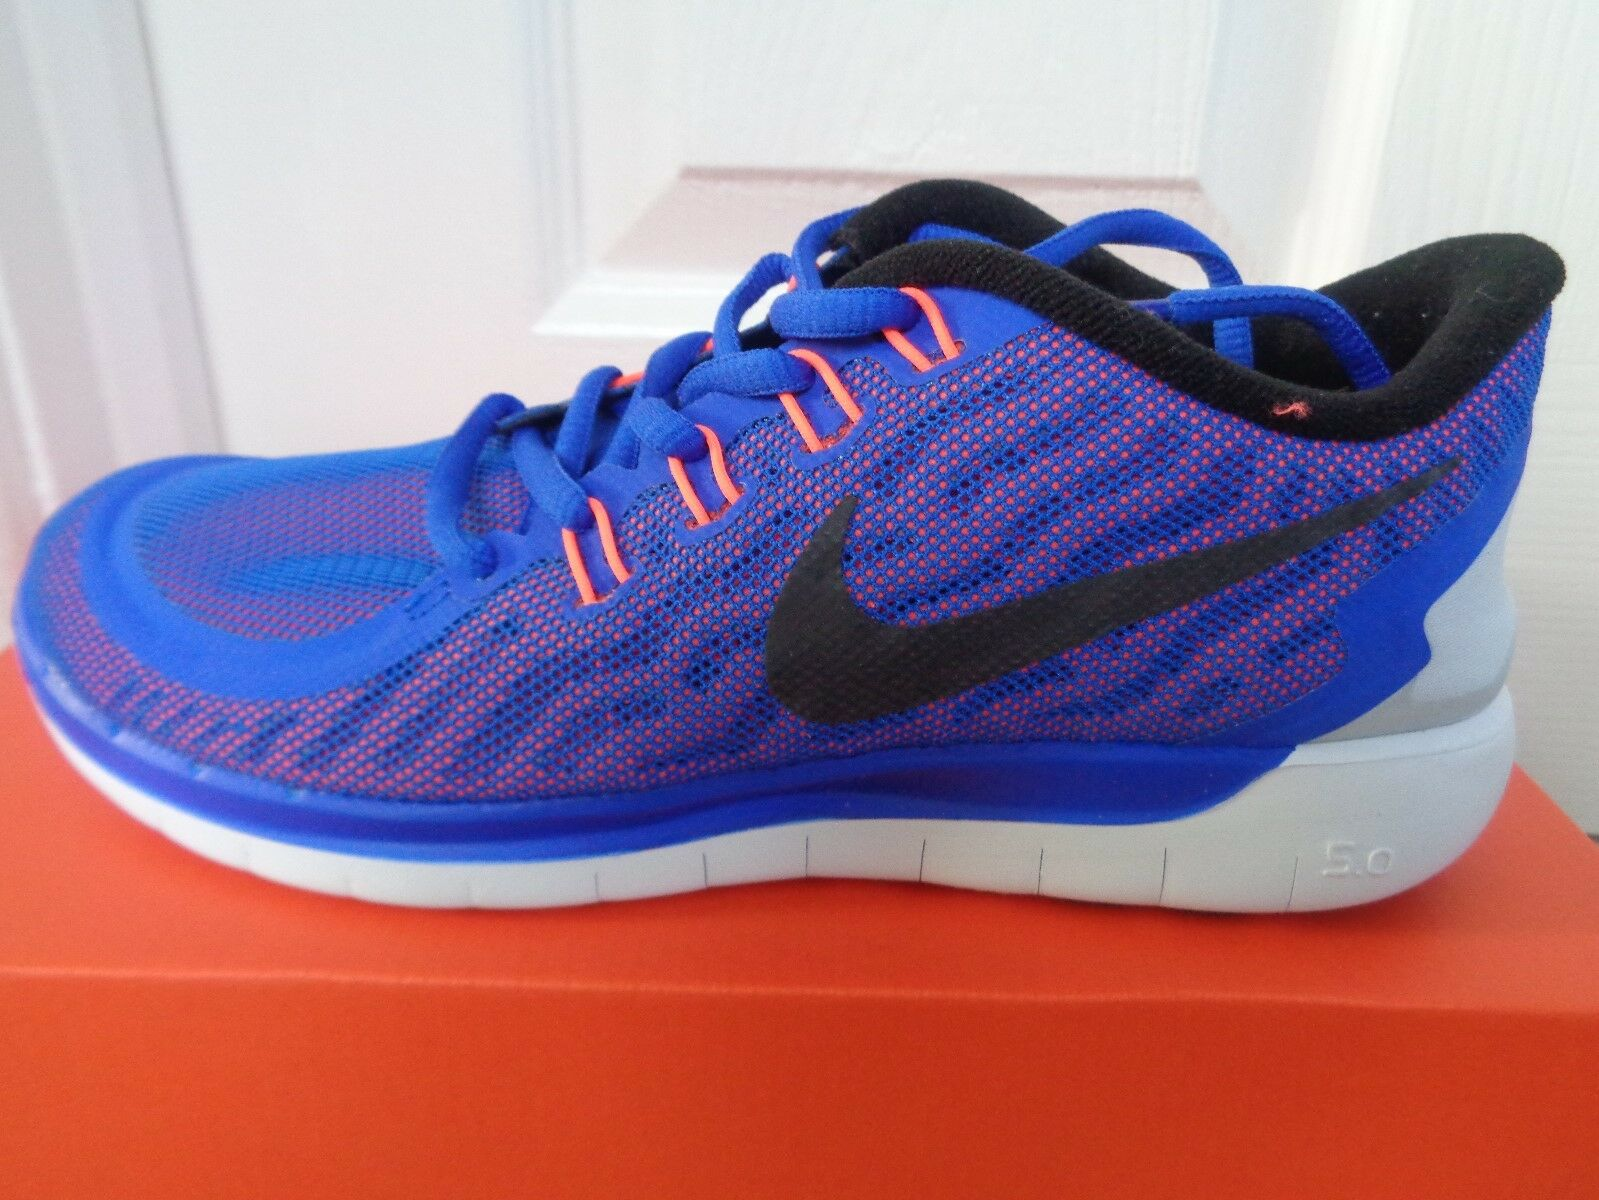 Nike Free 5.0 Flash wmns trainers sneaker 806575 408 uk 4 eu 37.5 us 6.5 NEW+BOX